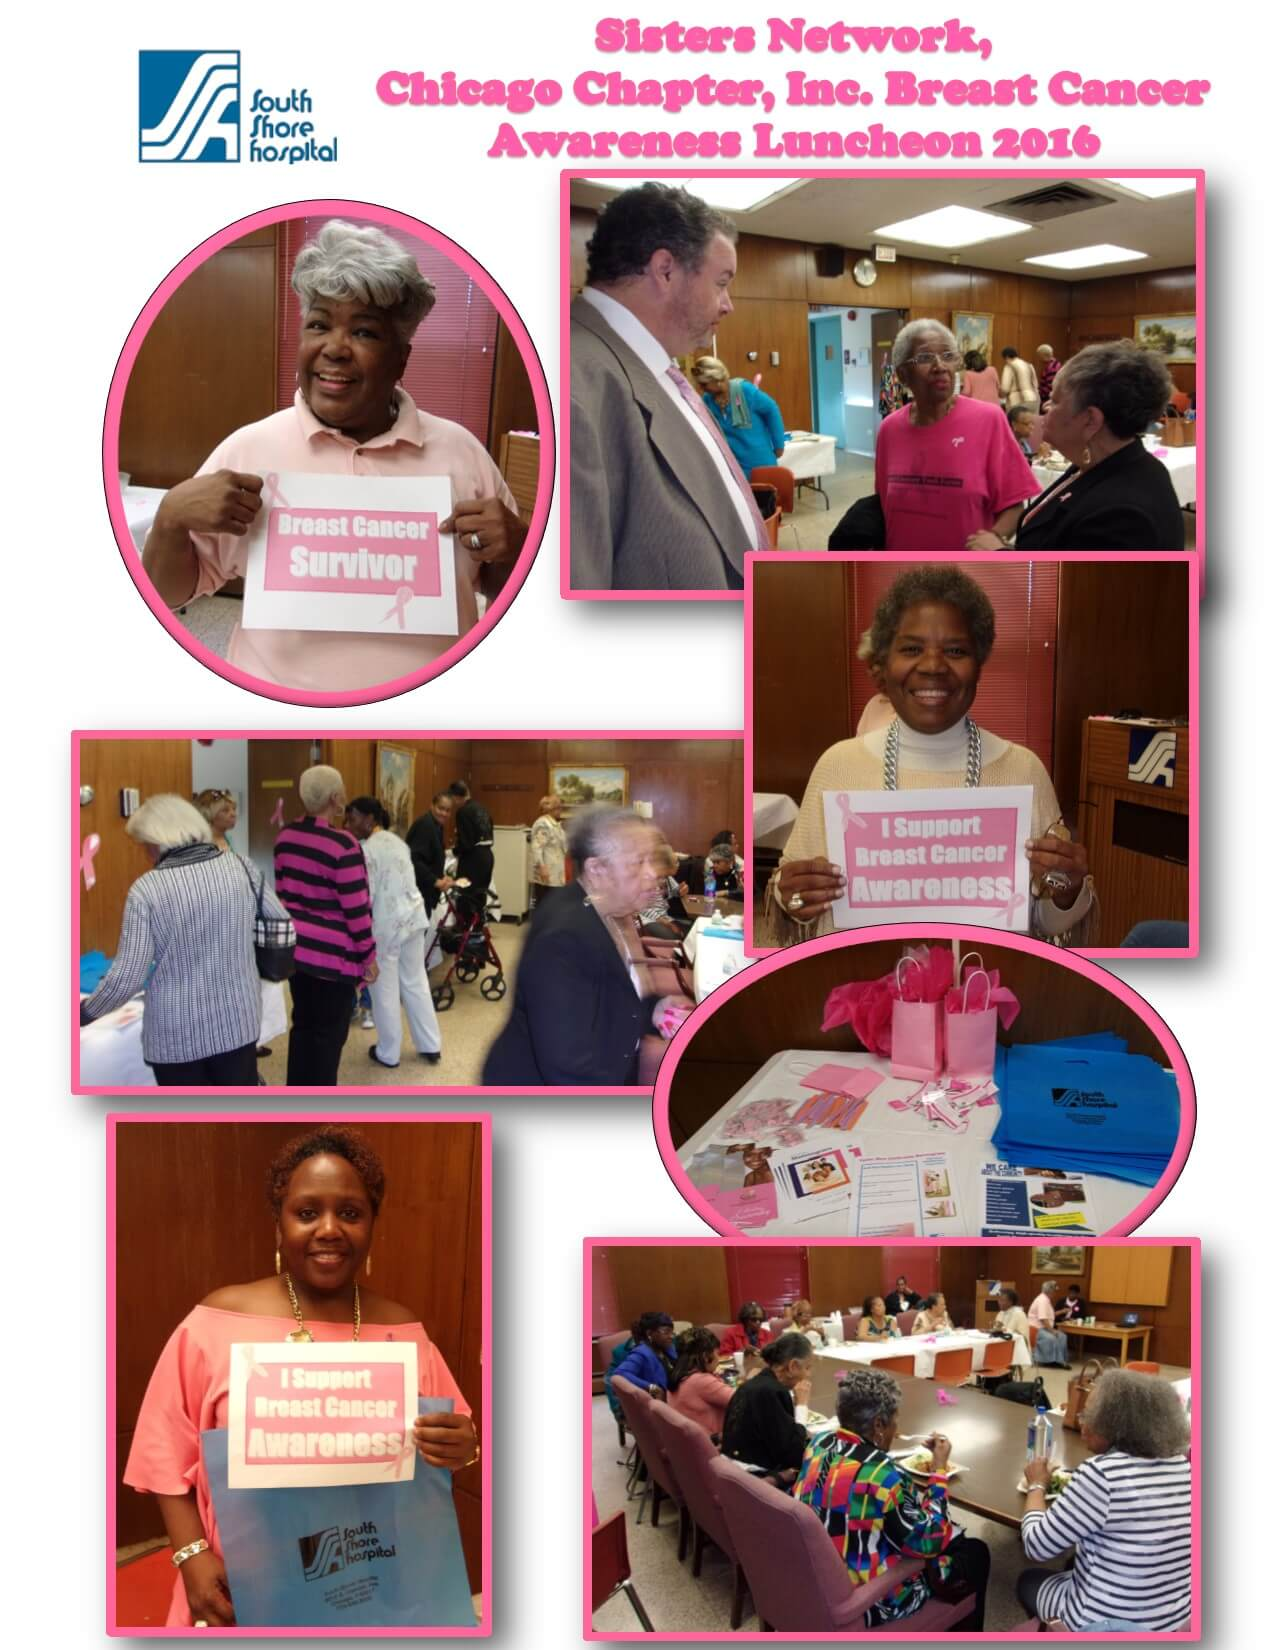 breast-cancer-luncheon-ssh-and-sisters-network-highlight-photos-10-18-16